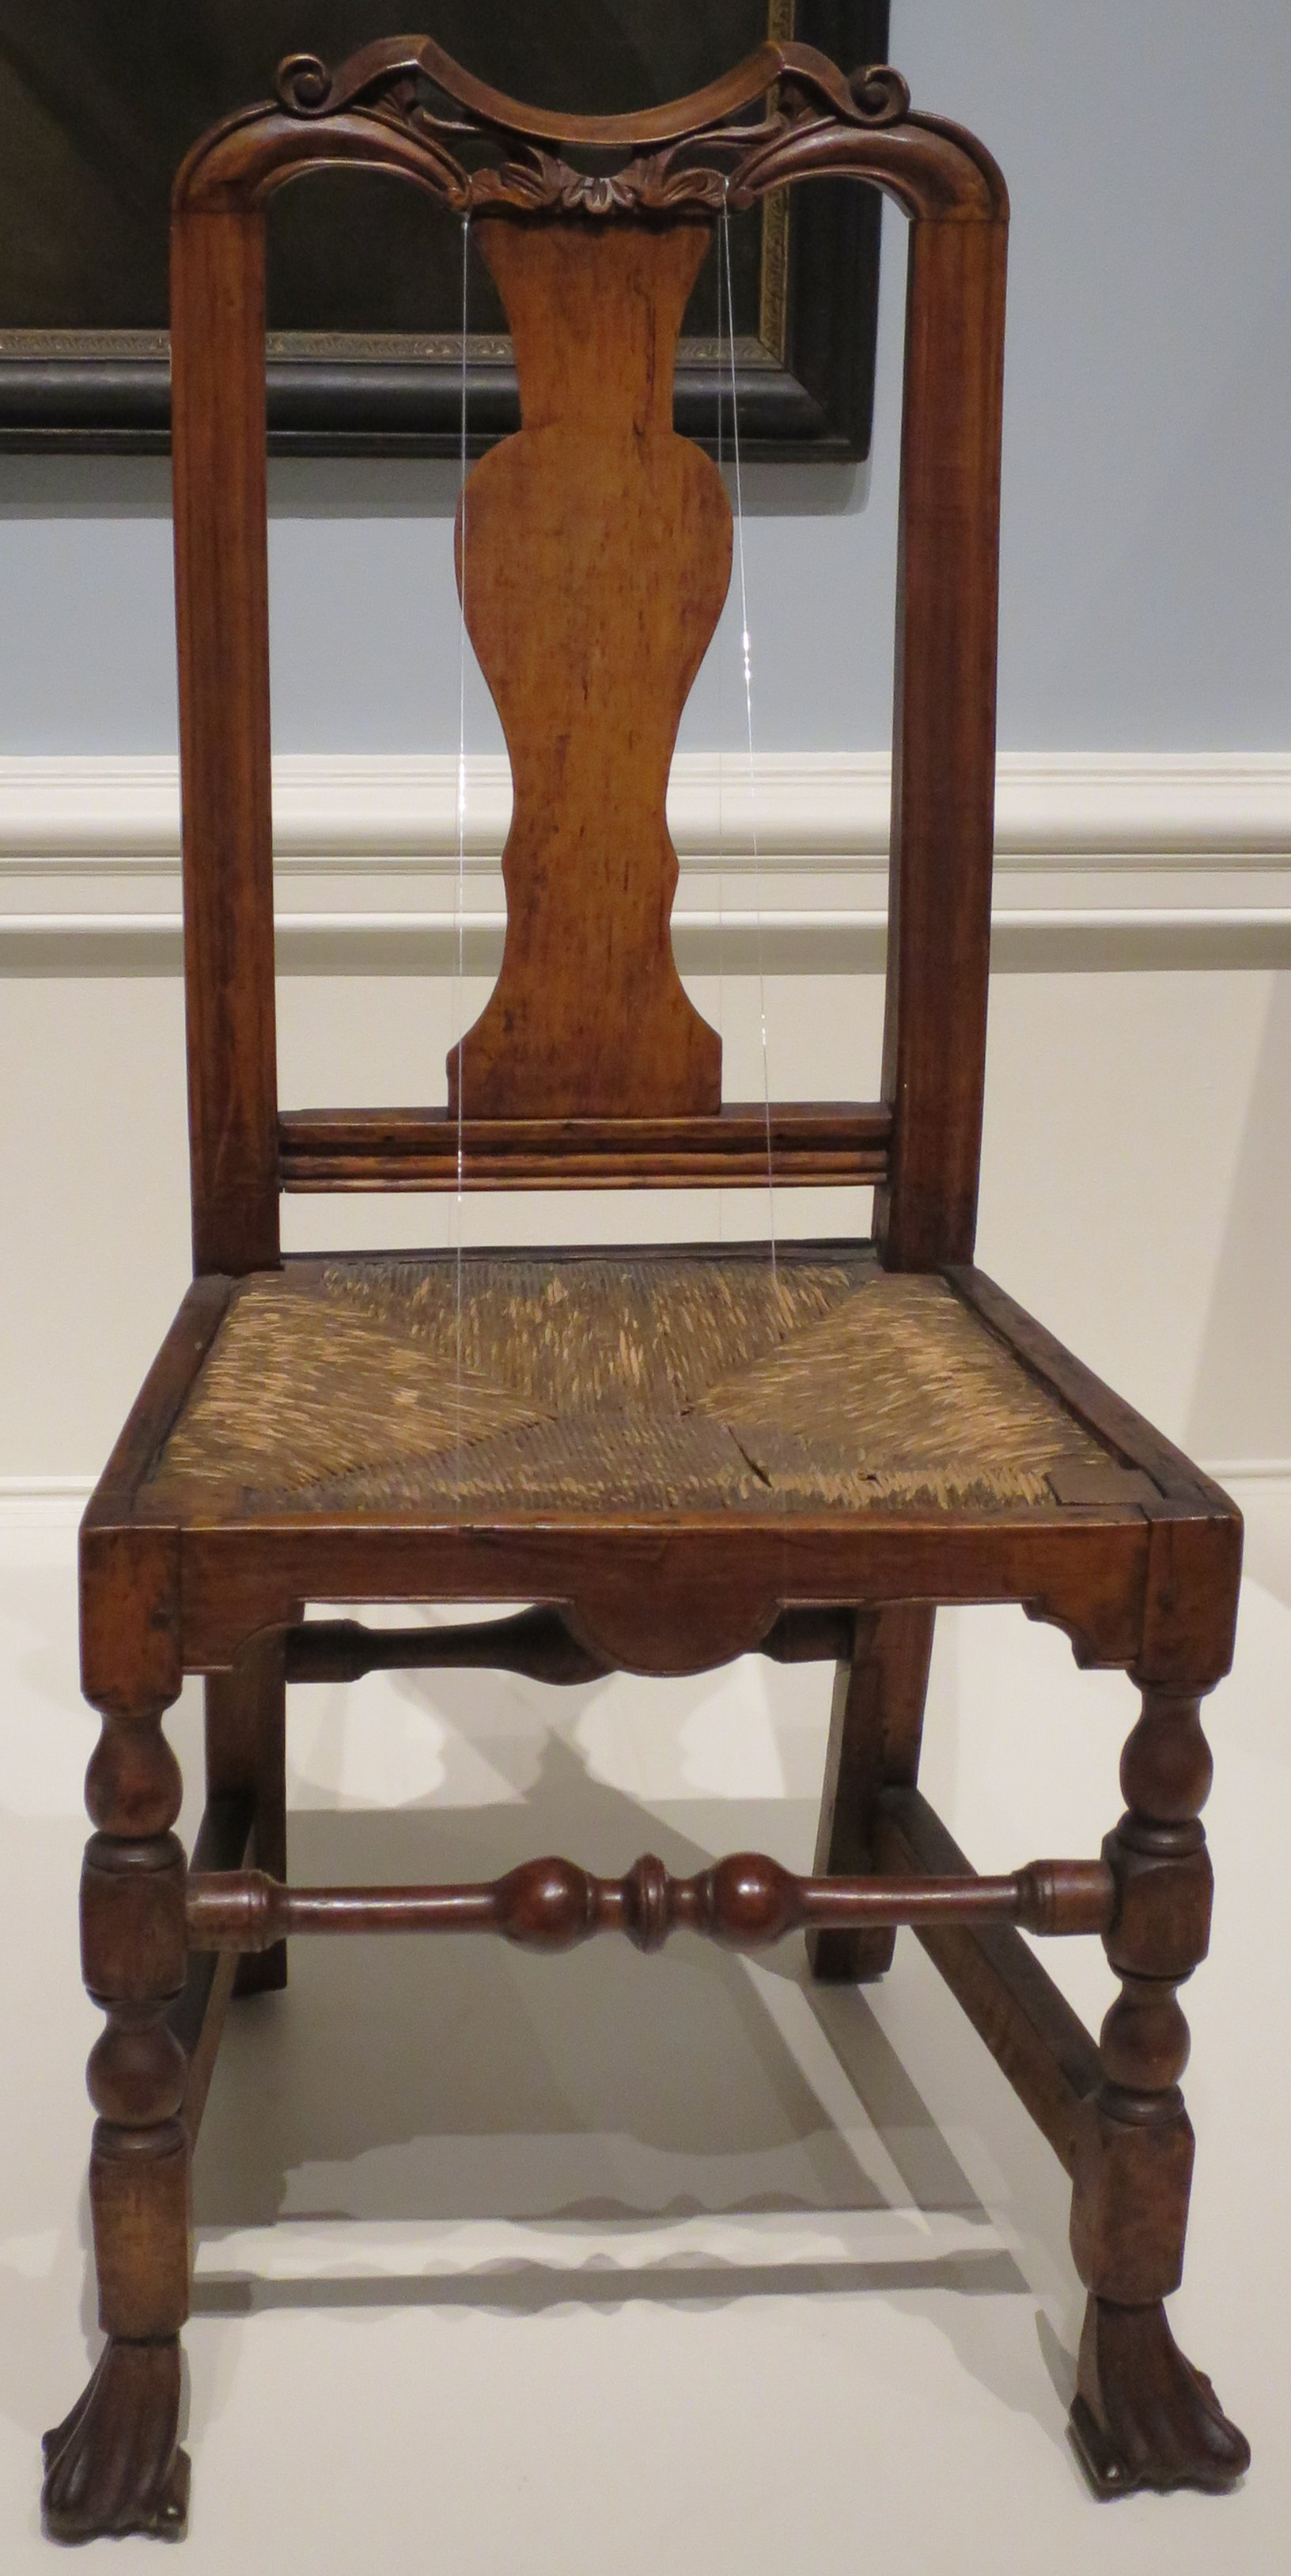 Queen anne chair history - File American Queen Anne Style Side Chair Made By John Gaines Iii C